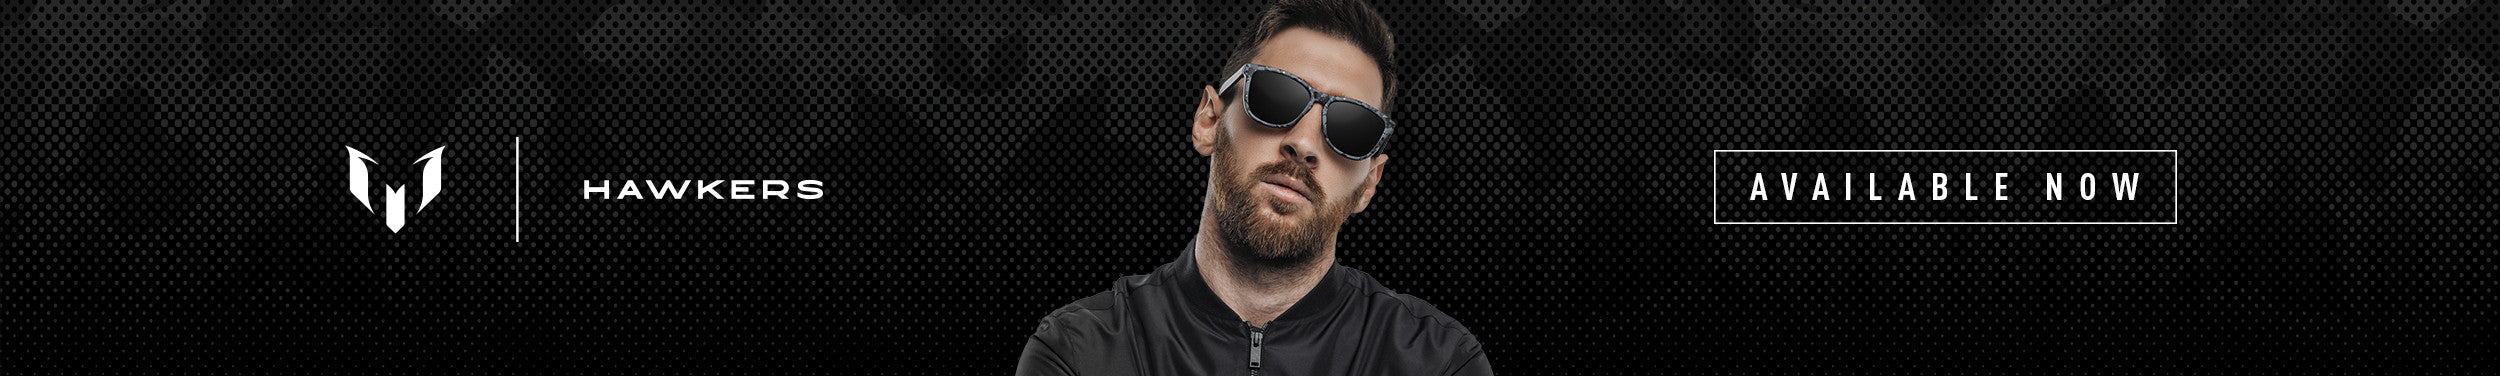 Gafas sol Hawkers messi Sunglasses Limited Edition